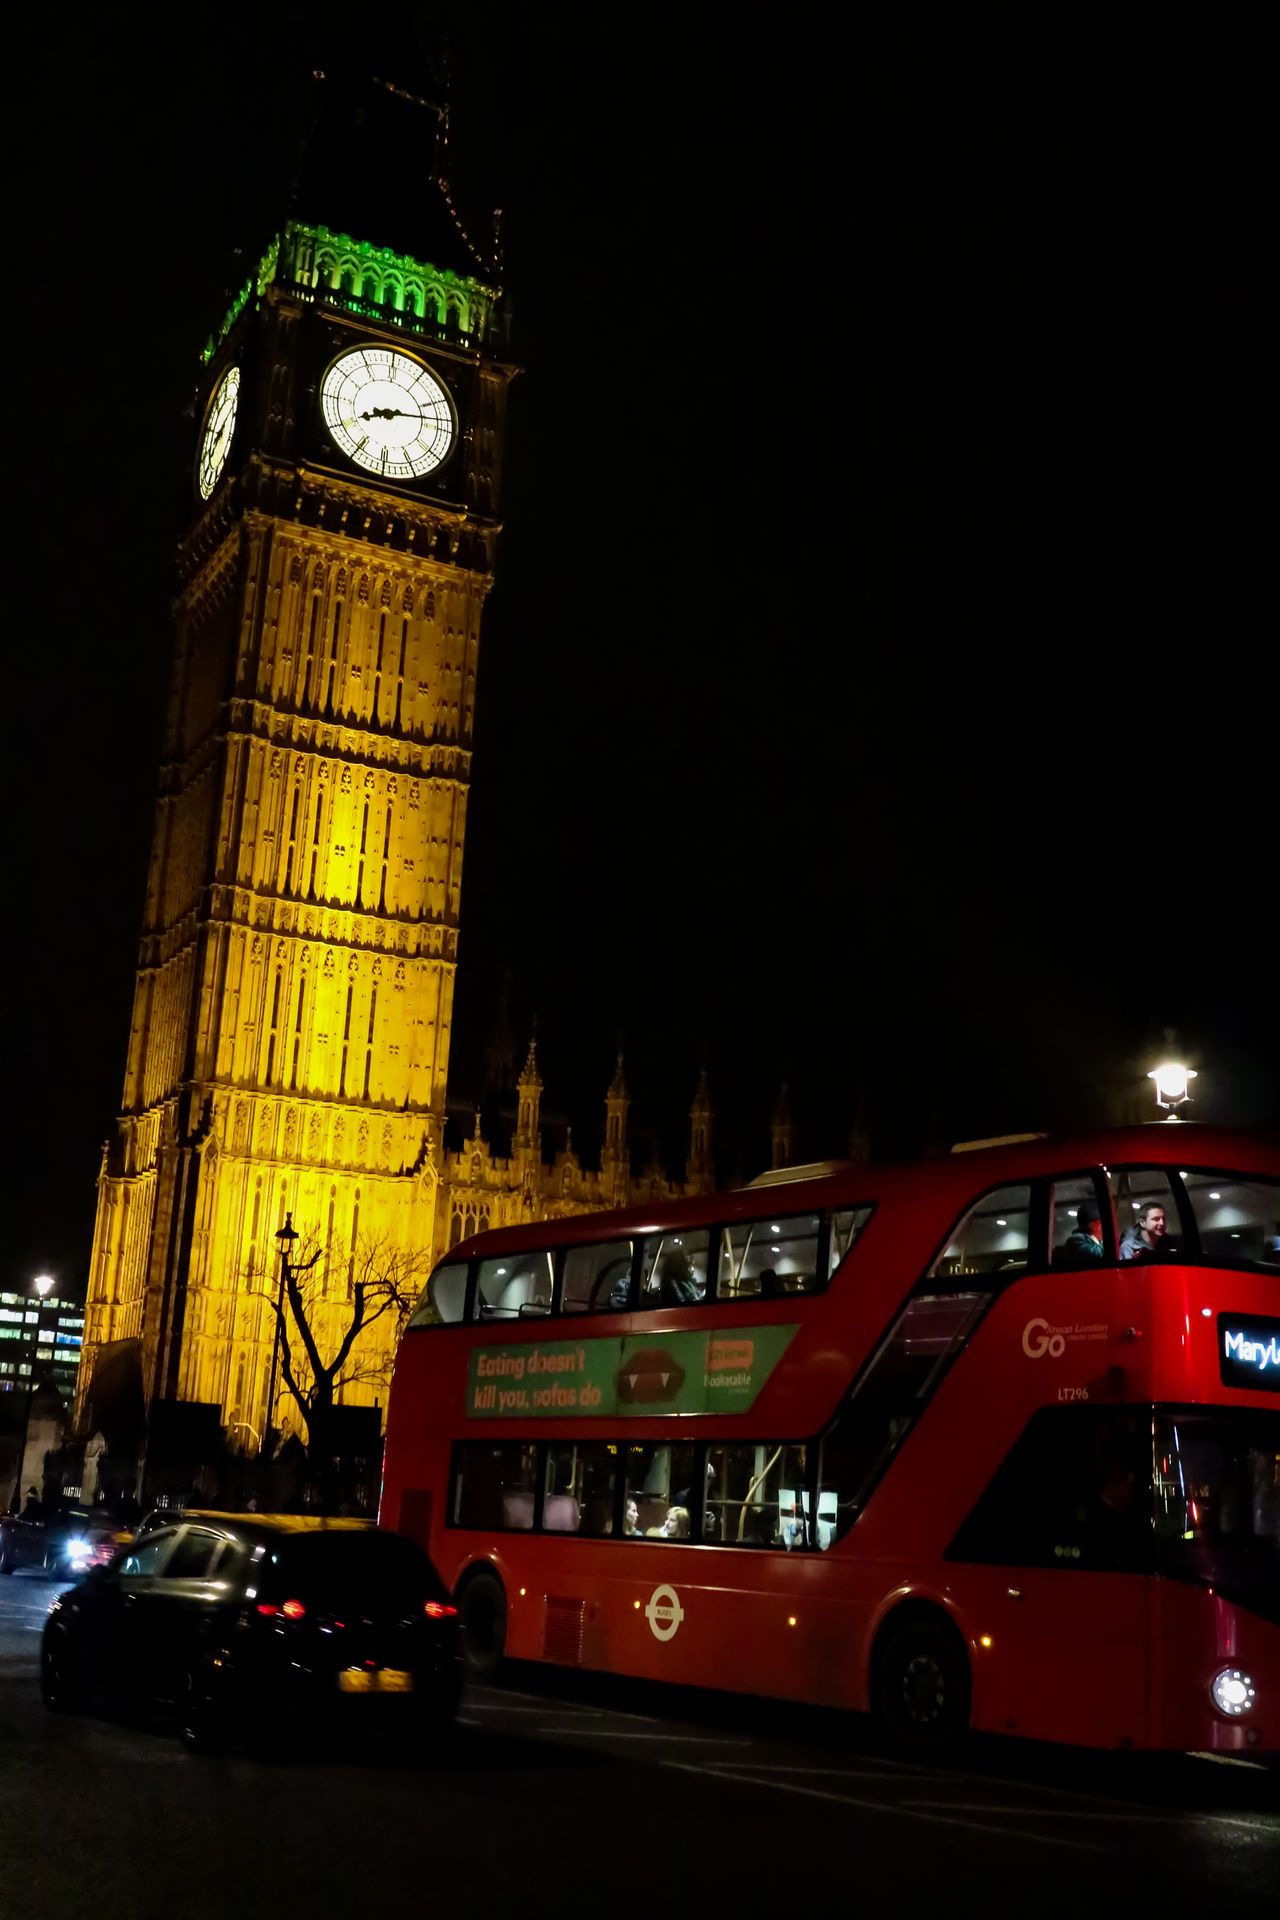 Architecture Architecture Big Ben Bus City City Life Clock Clock Face Clock Tower Drive Icon Illuminated Lighting Midnight Night No People Red Red Street Time Tour Transportation Travel Vehicle Westminster